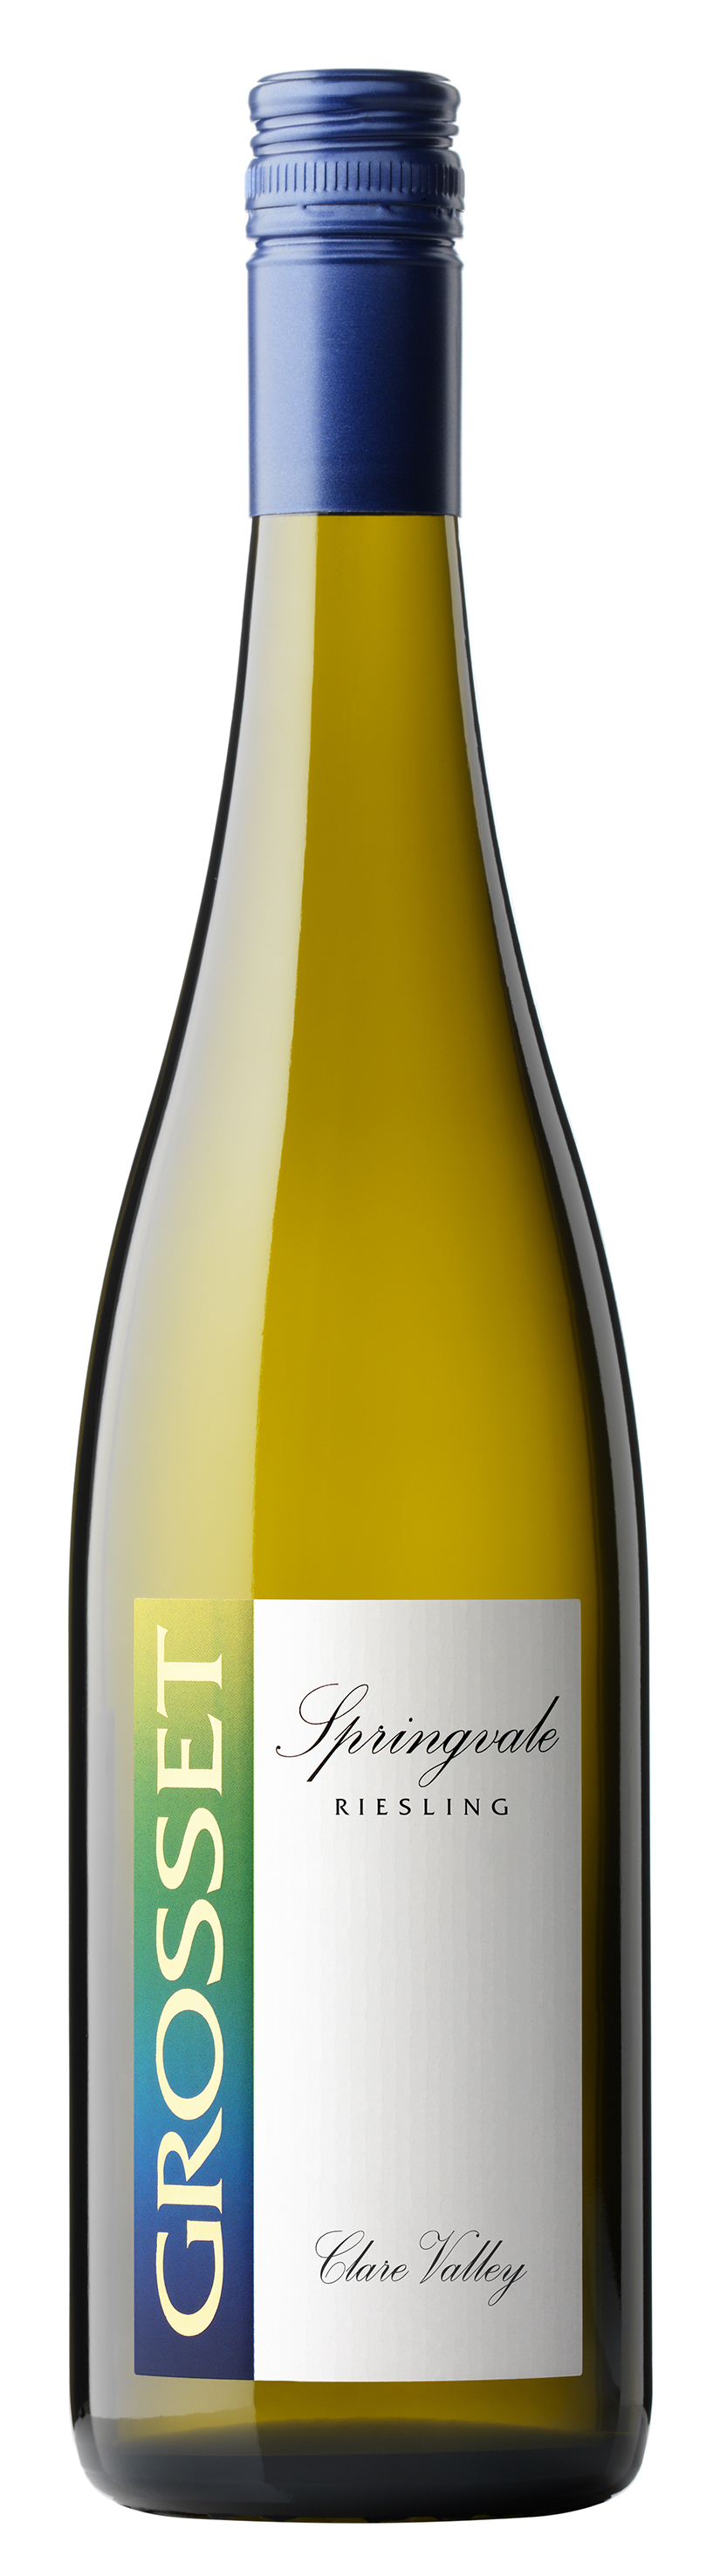 Grosset, `Springvale` Clare Valley Riesling 2018